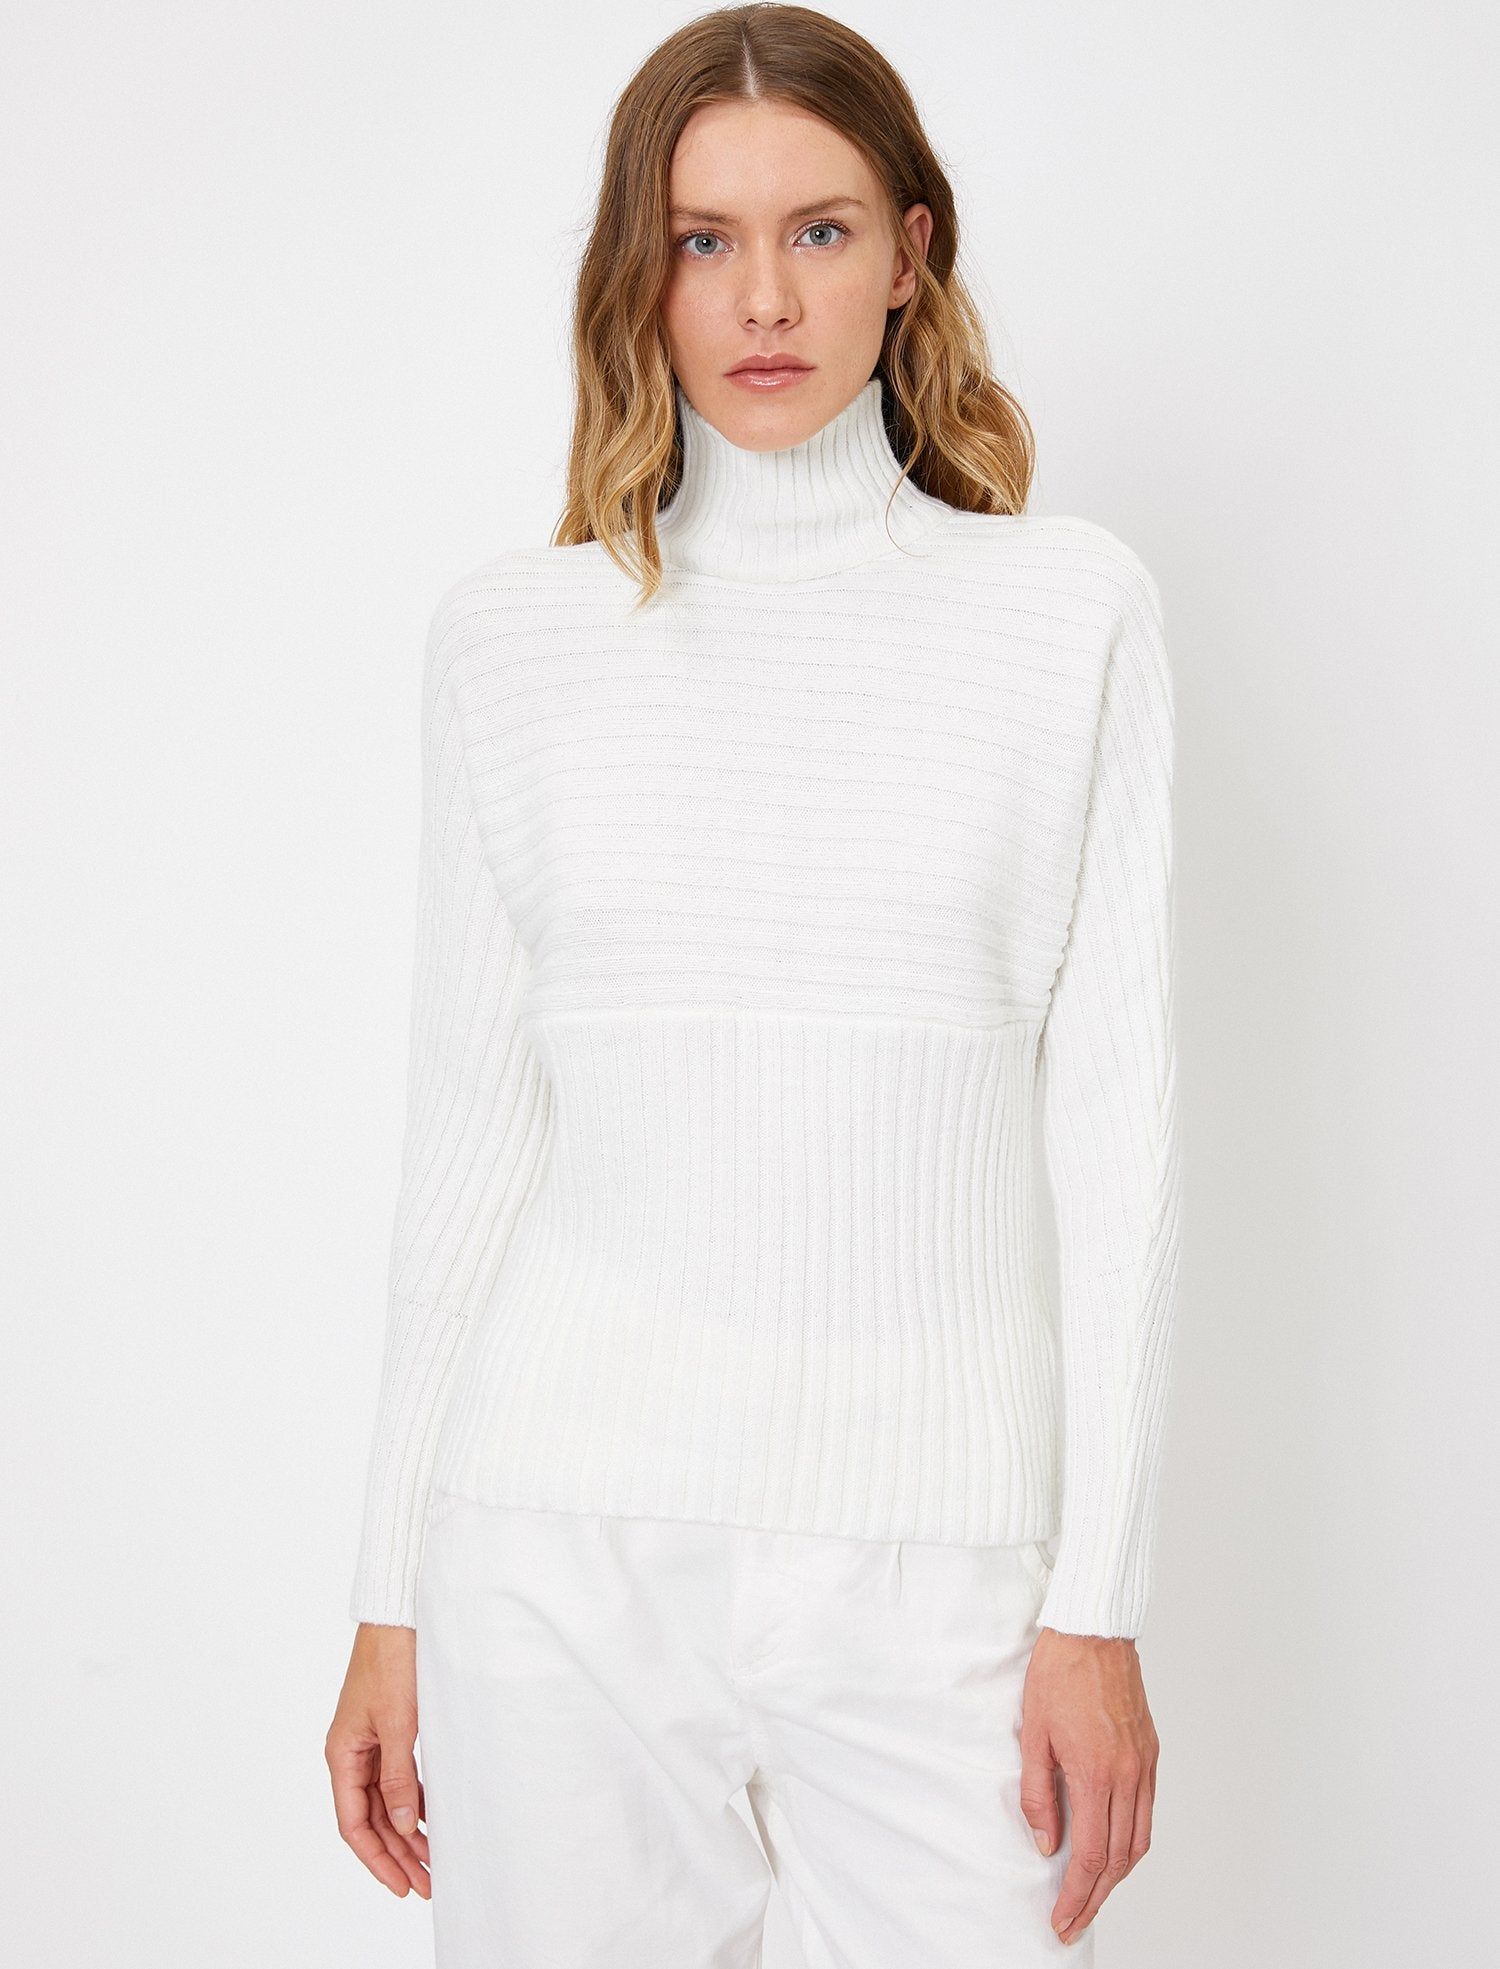 Chunky Ribbed Turtle Neck Sweater in White